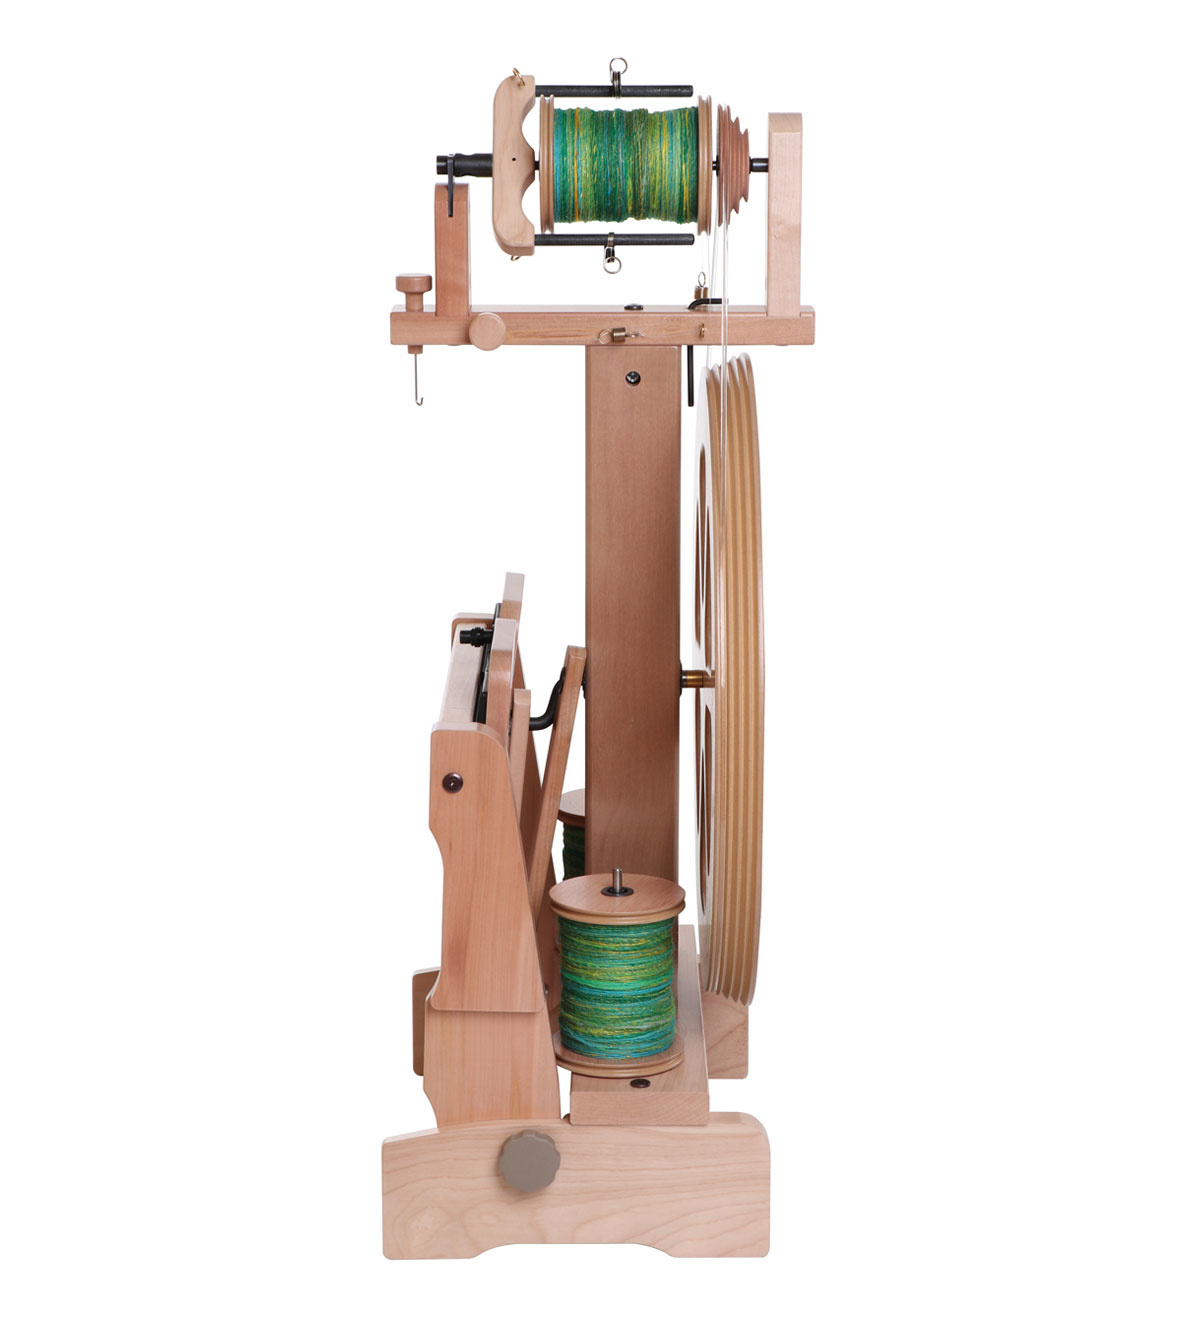 Kiwi 3 Natural Spinning Wheel